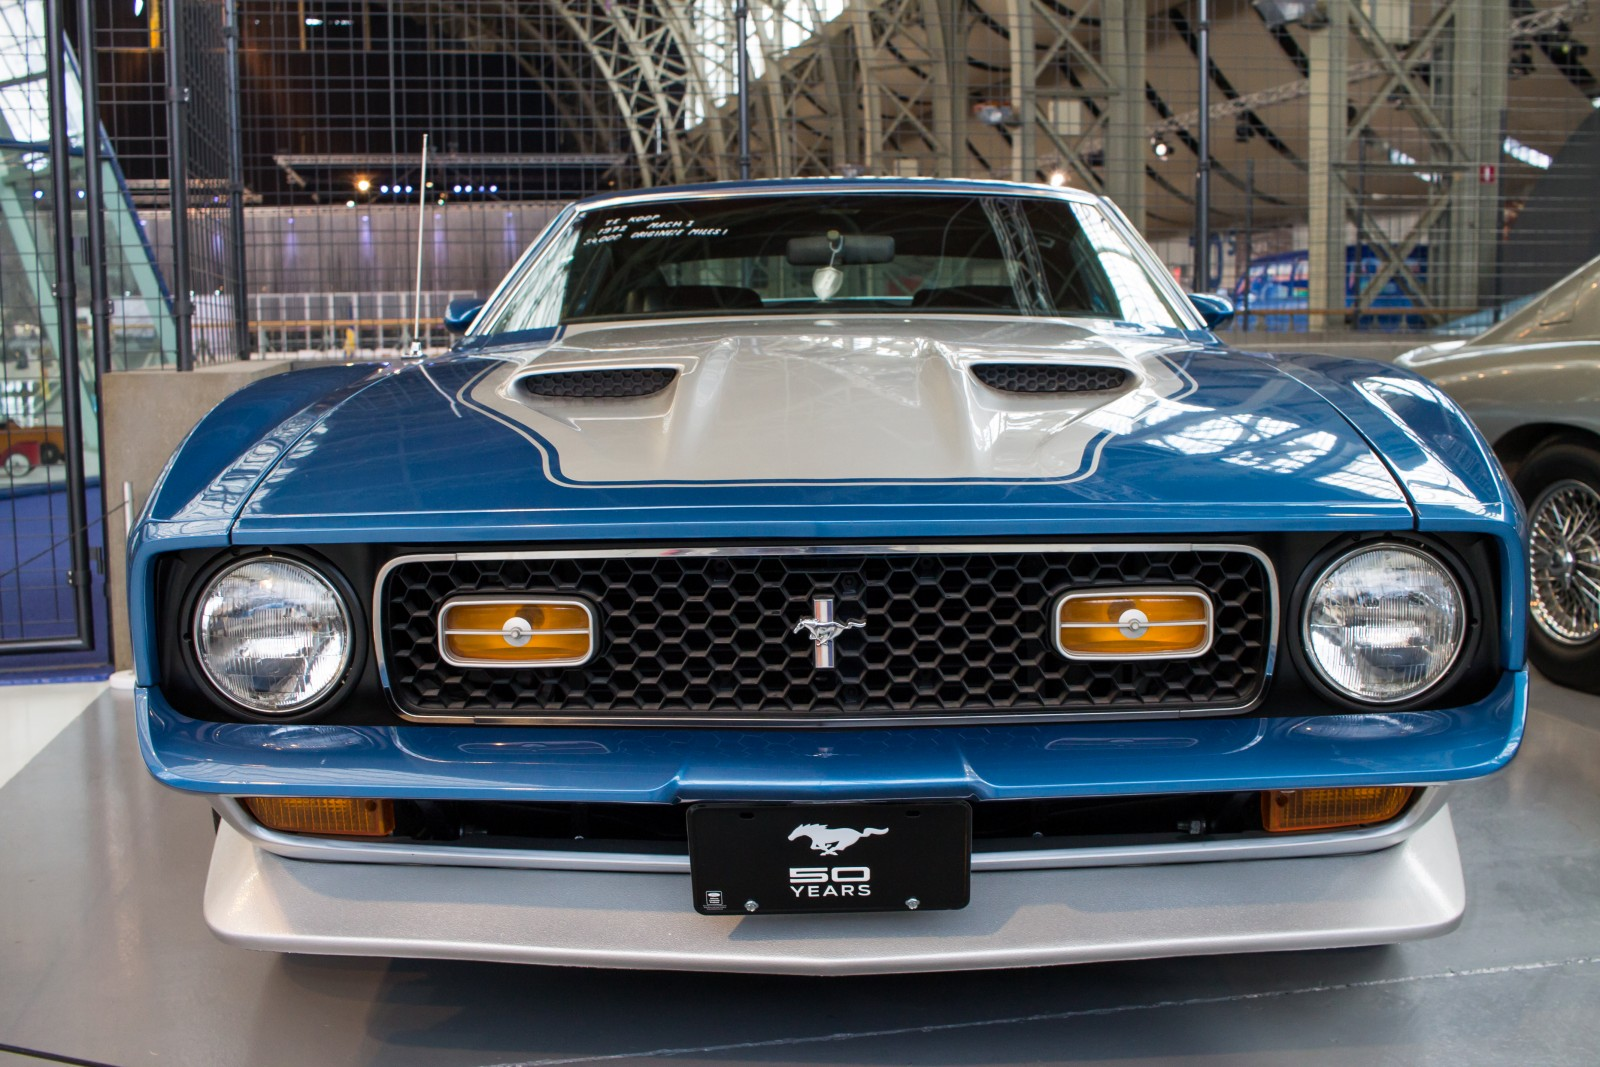 50 Years Mustang in the Autoworld Brussels